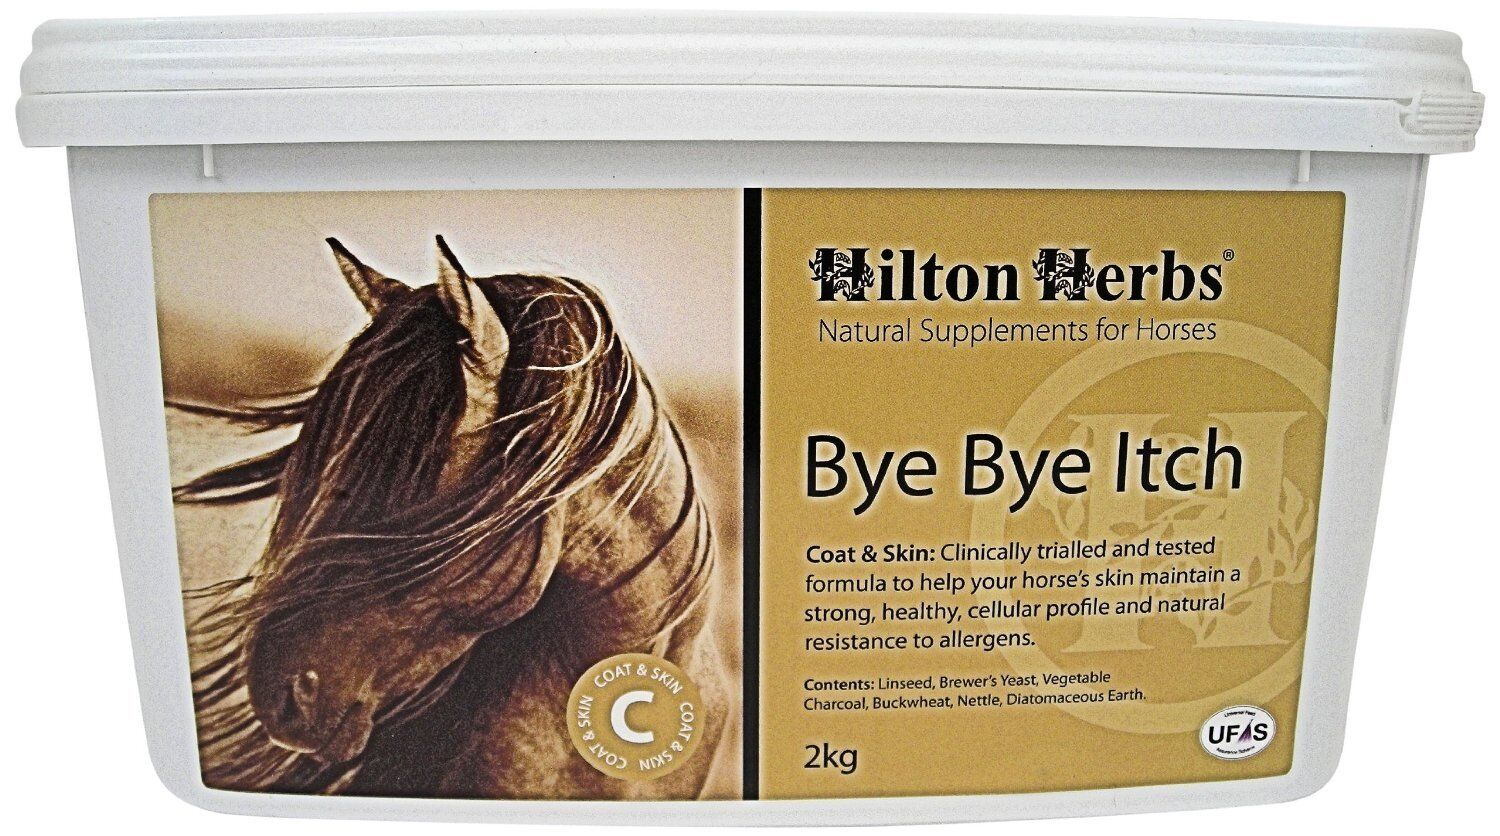 HILTON HERBS BYE BYE ITCH 2KG FOR SUPPLEMENT FOR 2KG HORSES FOR IRRITATIONS 1effa5